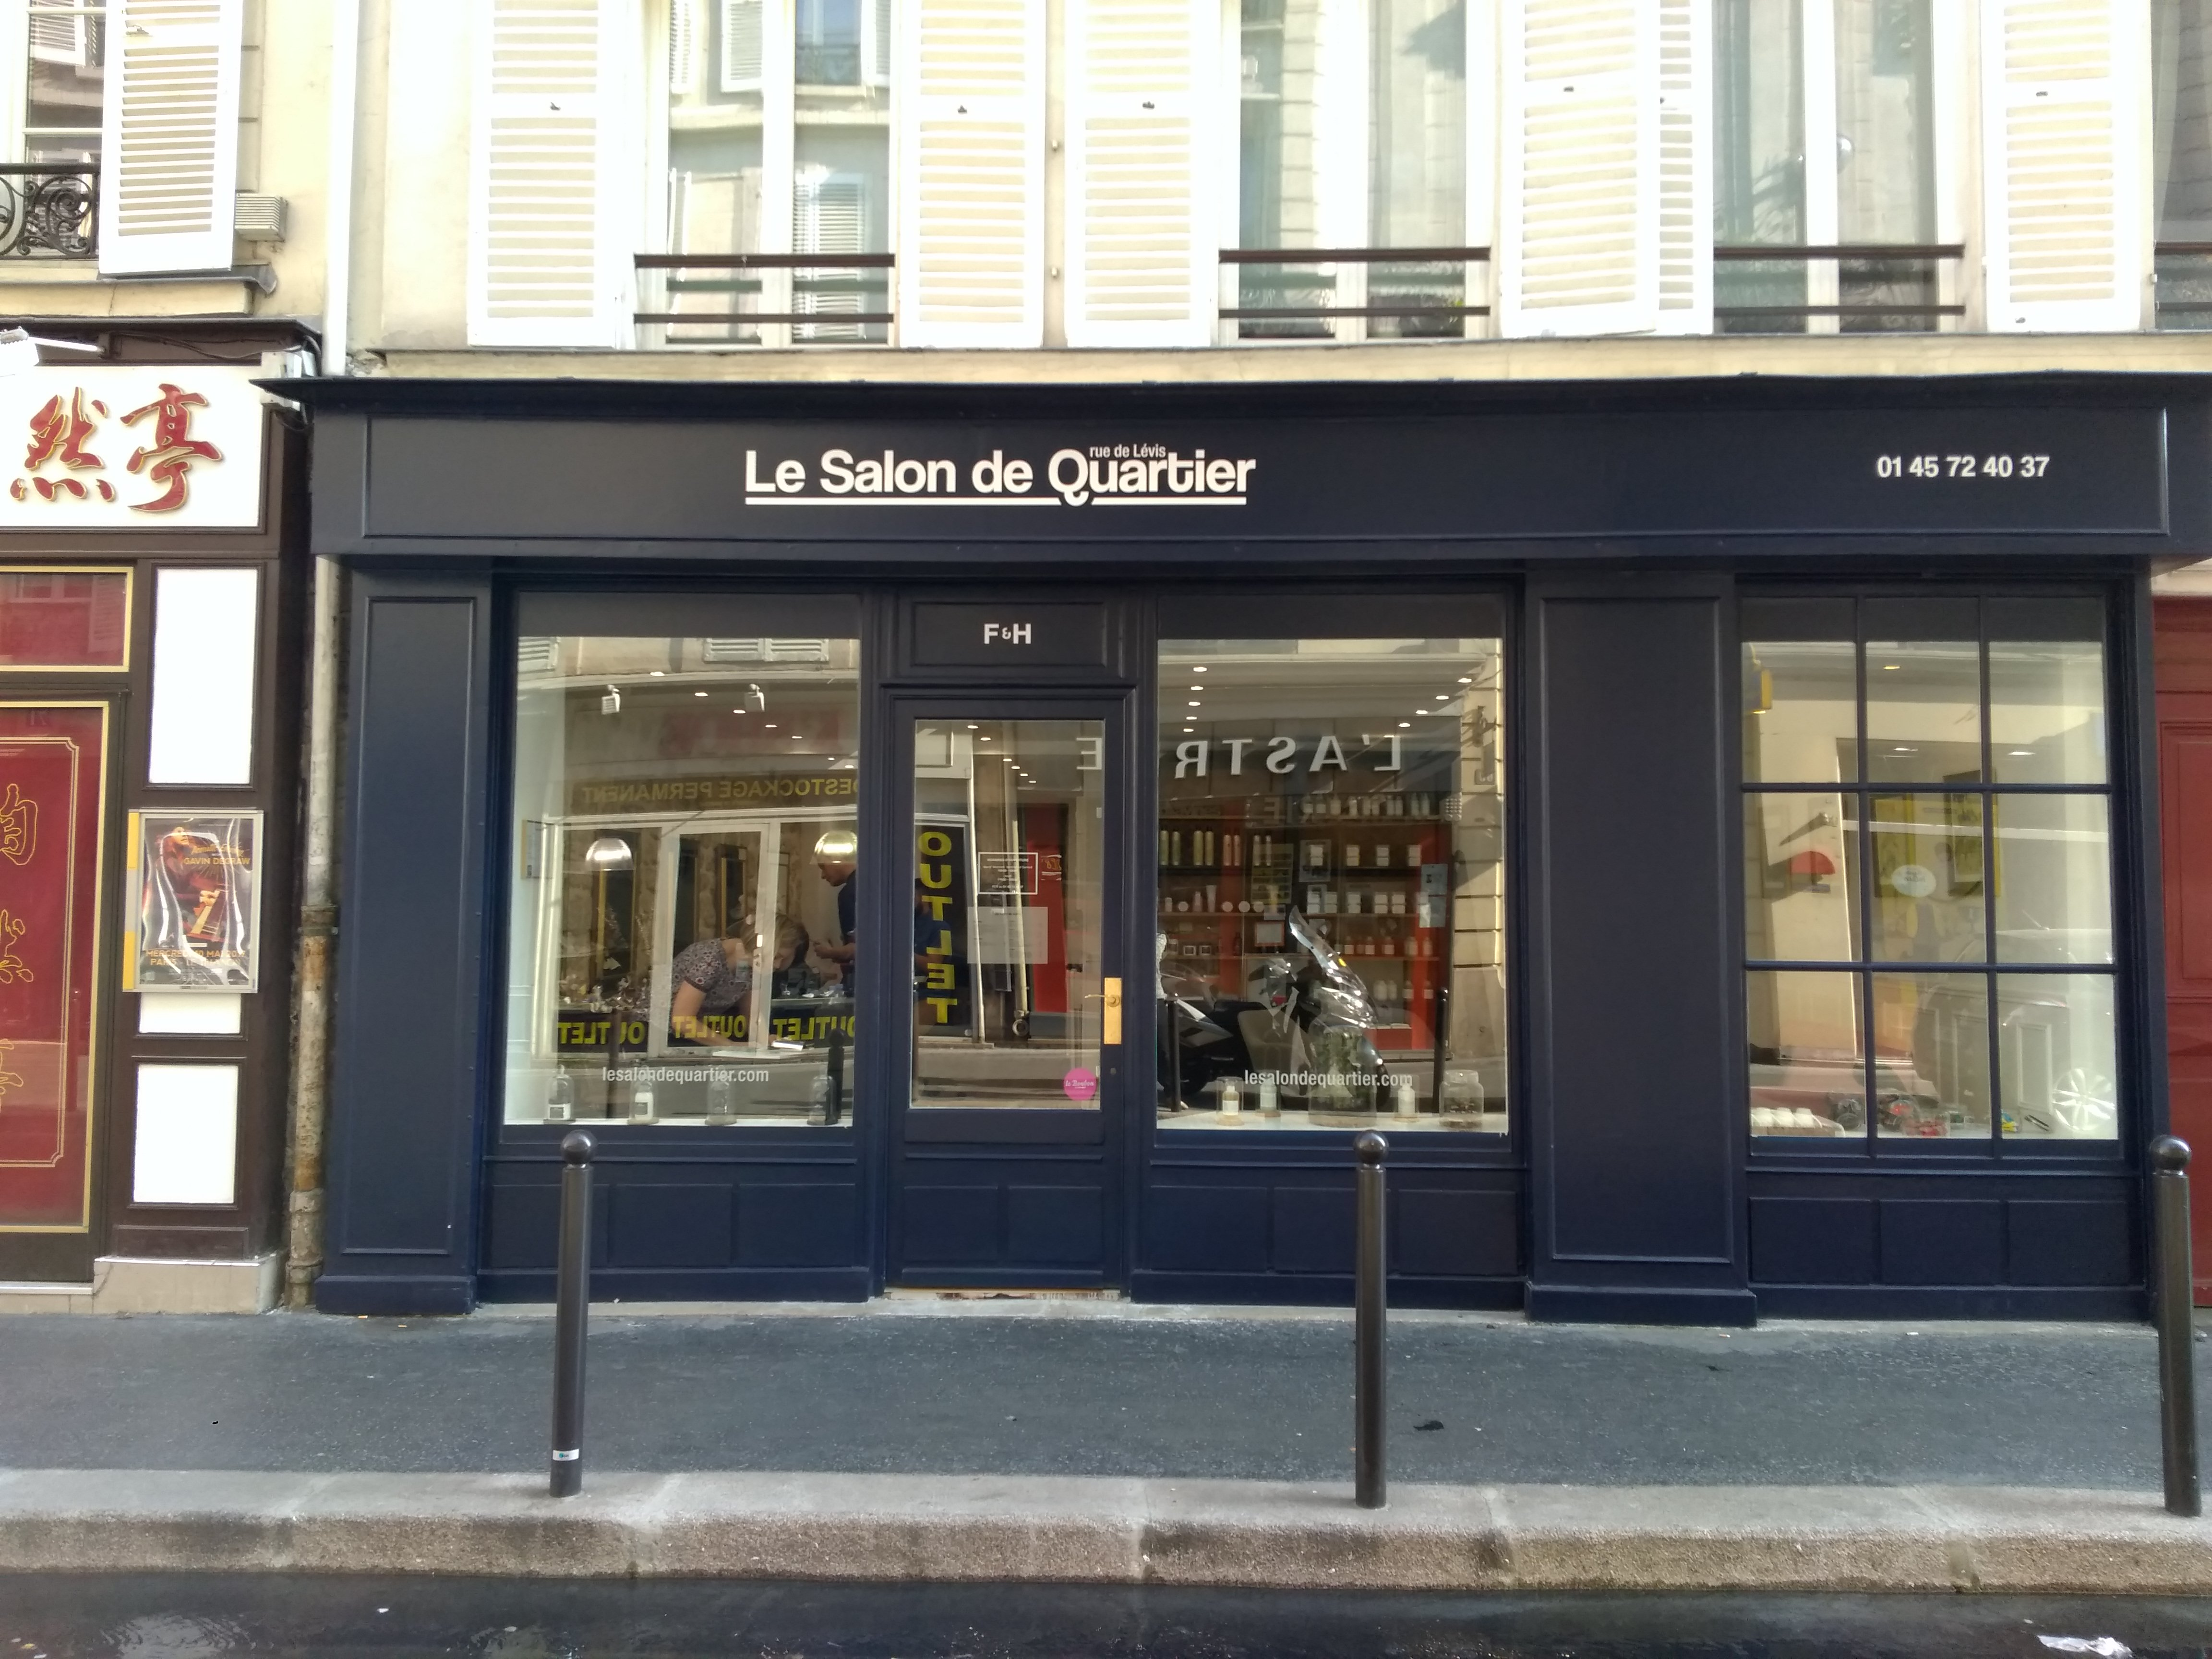 Le salon du quartier hair salon pr te moi paris for Hair salon perfect first essential